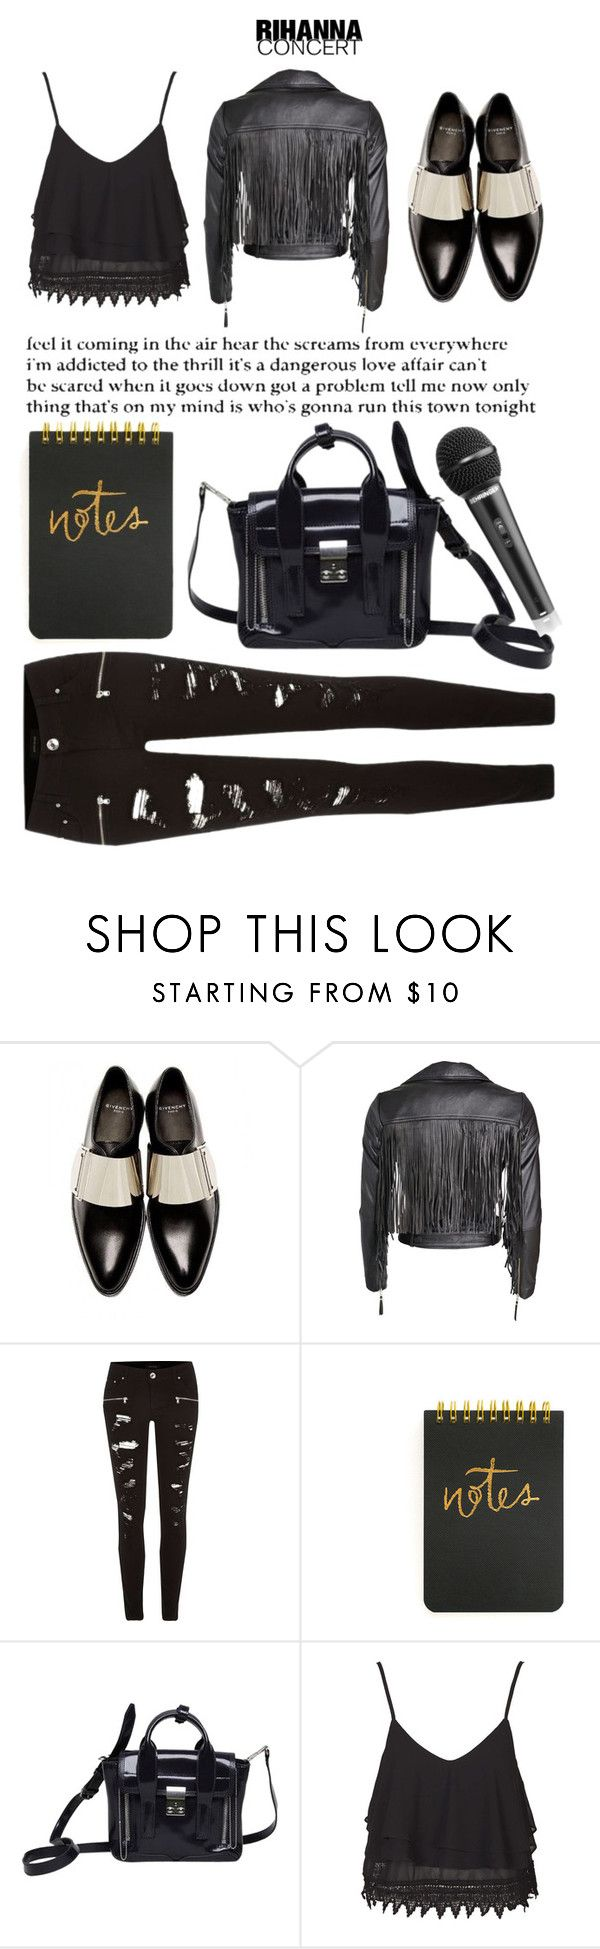 """Another concert look"" by lseed87 ❤ liked on Polyvore featuring Givenchy, Designers Remix, River Island, 3.1 Phillip Lim, Topshop and Rihanna"